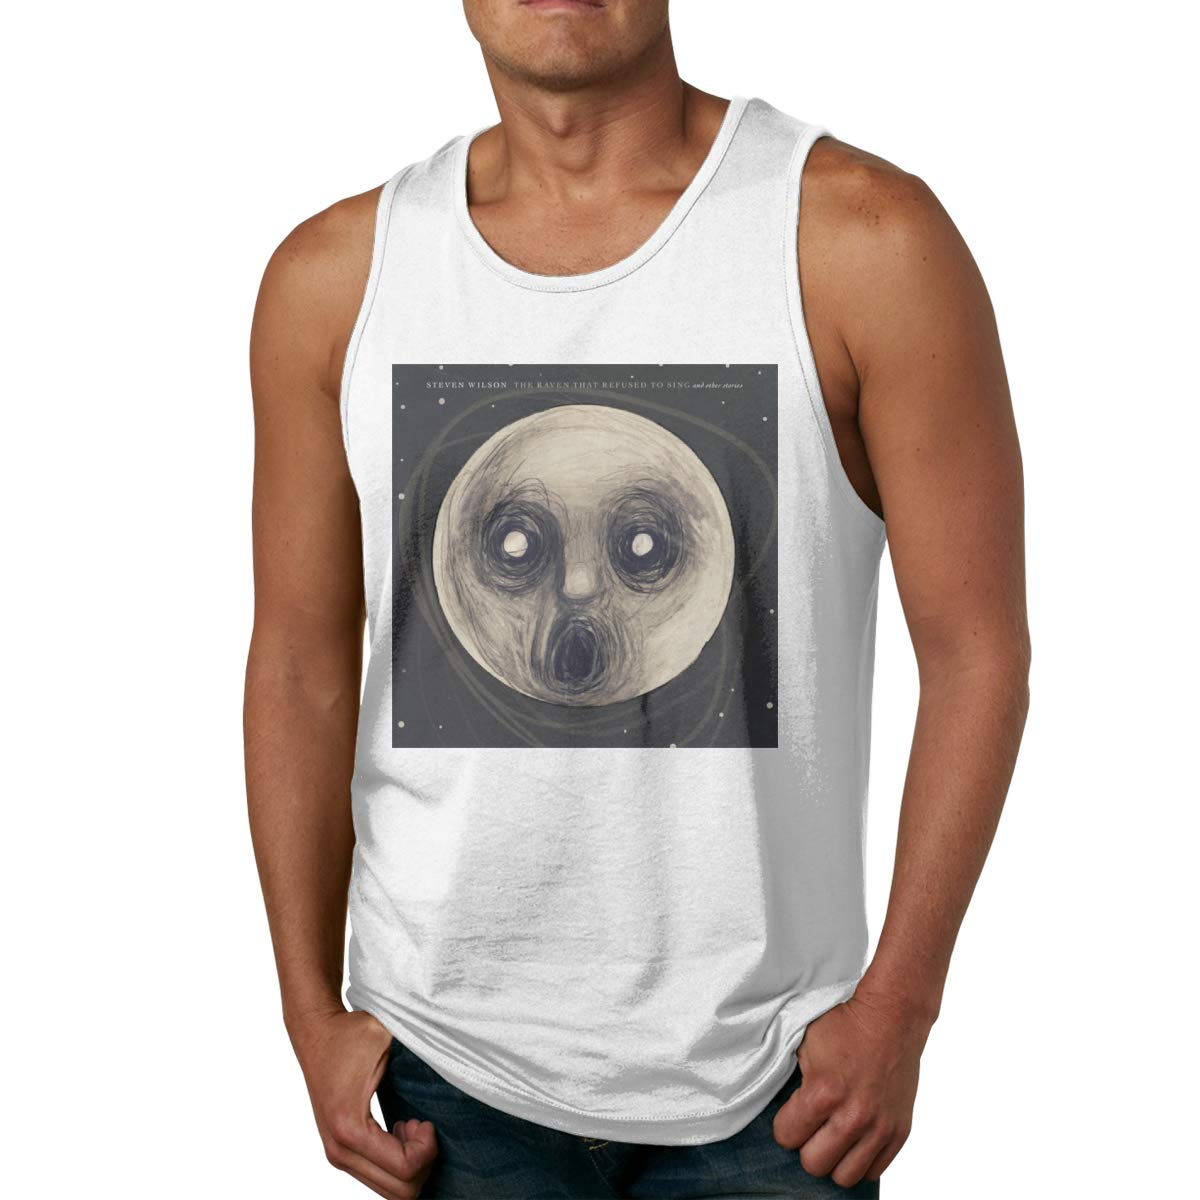 S Steven Wilson The Raven That Refused To Sing Popular Body Shaper Sleeveless Tanks Top Shirts